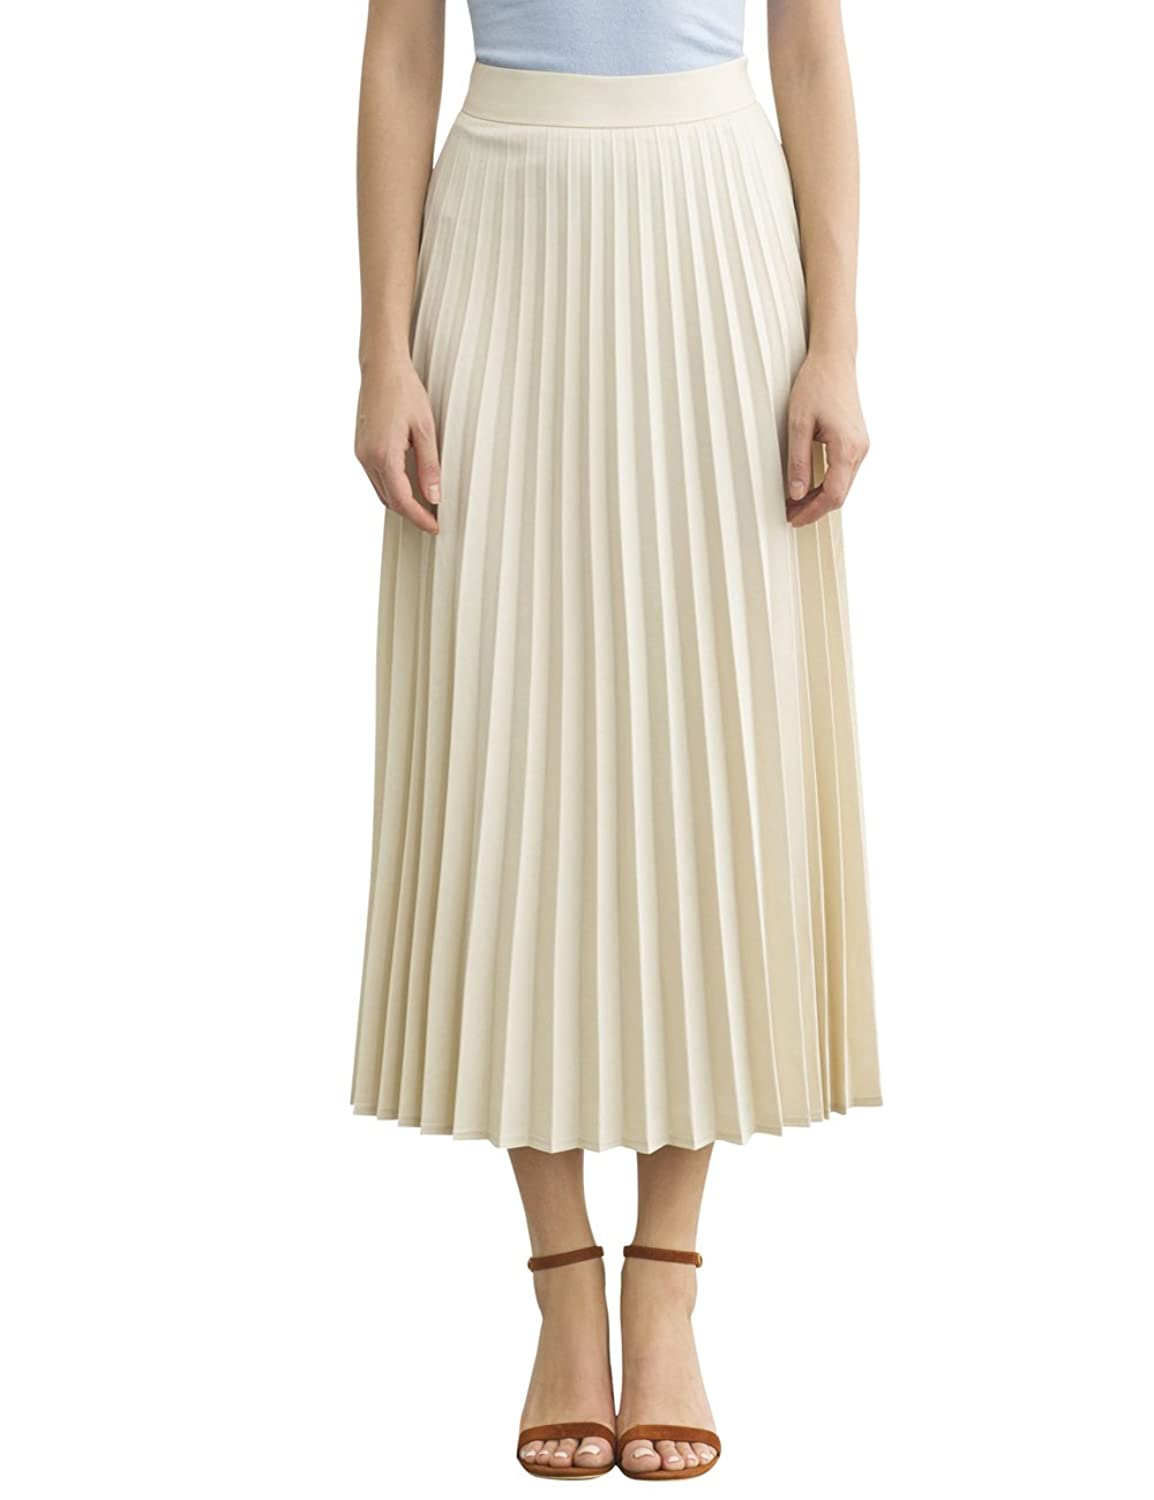 1920s Skirt History Simple Retro Womens High Waist Basic Pleated A-line Midi Skirt $24.99 AT vintagedancer.com